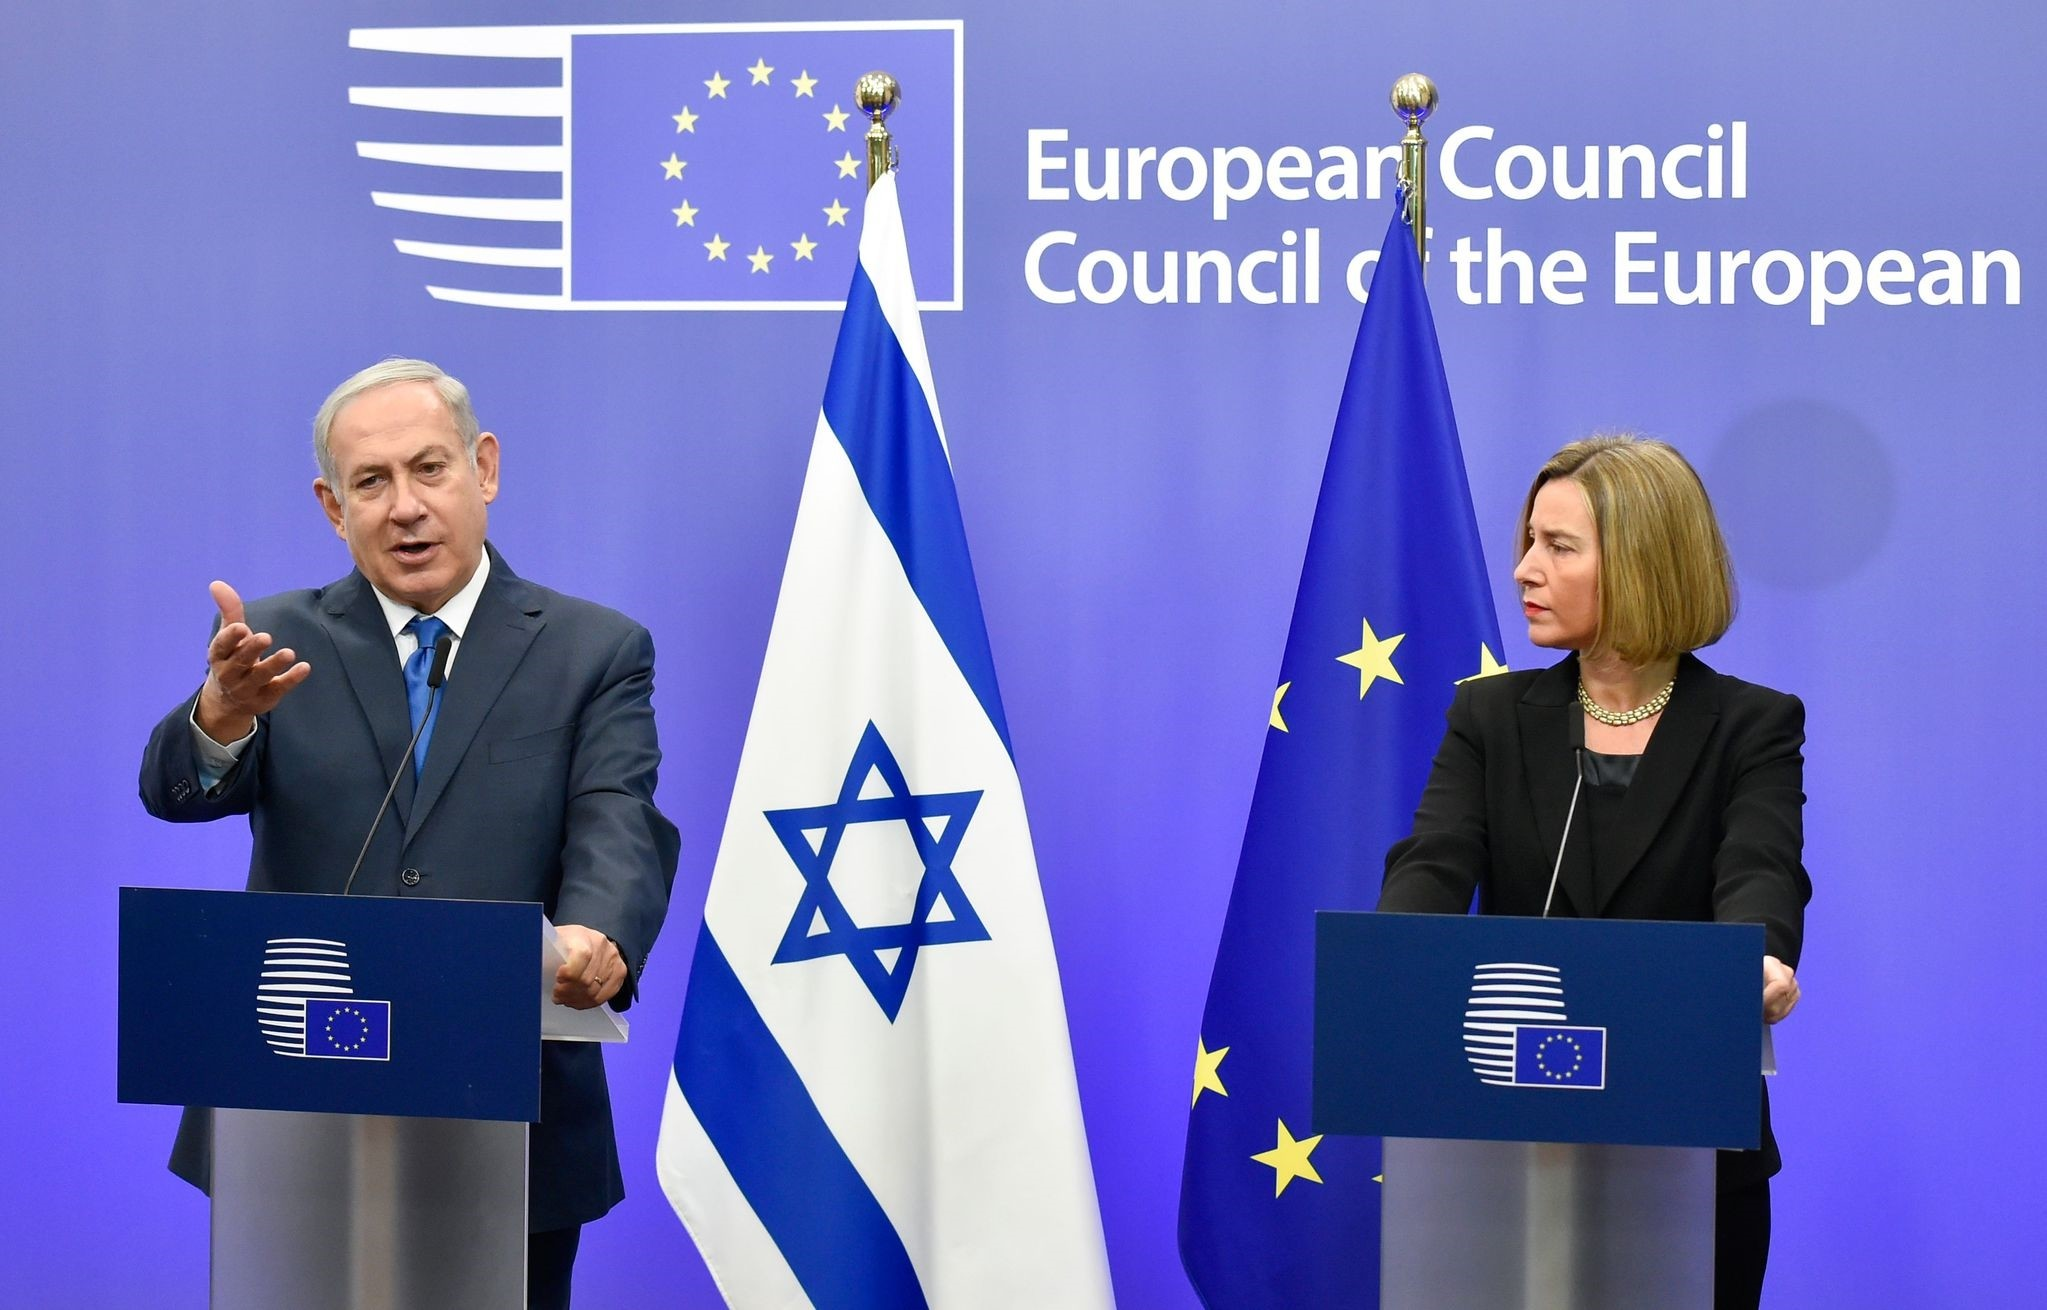 Israel's Prime Minister Benjamin Netanyahu speaks as EU foreign policy chief, Federica Mogherini looks on during a press conference at the European Council in Brussels on December 11, 2017. (AFP Photo)